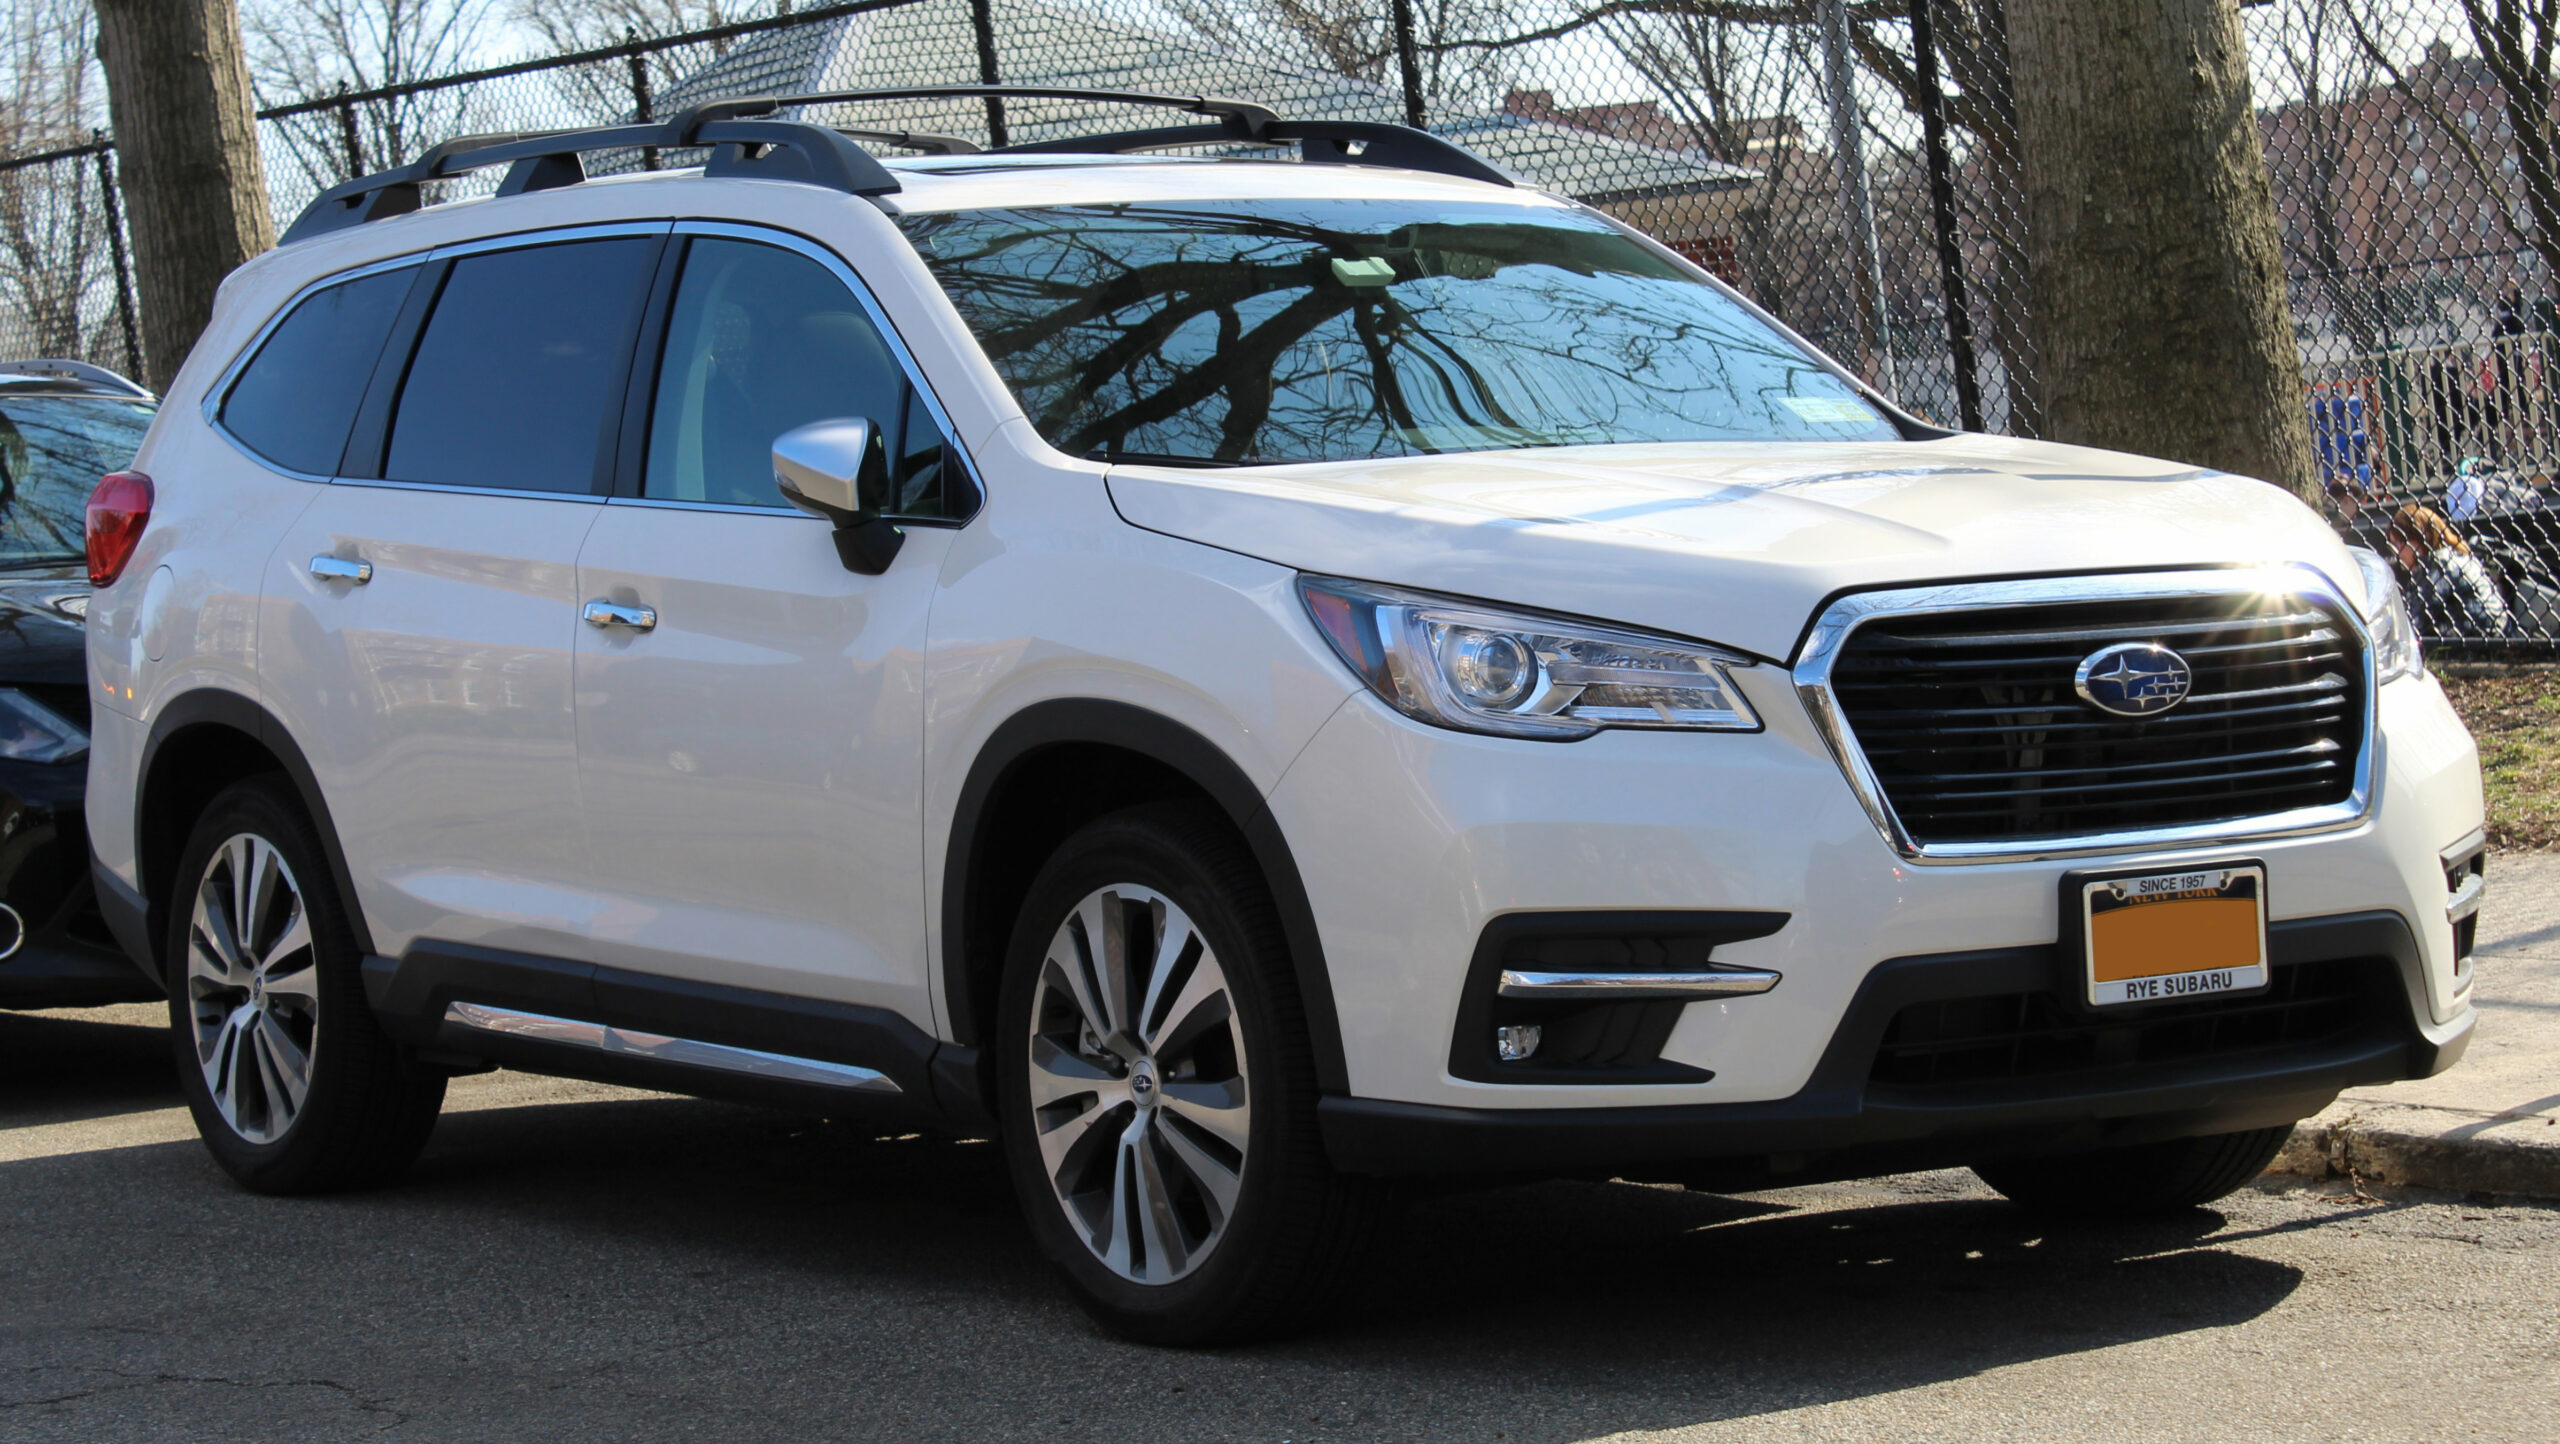 Subaru Ascent - Wikipedia